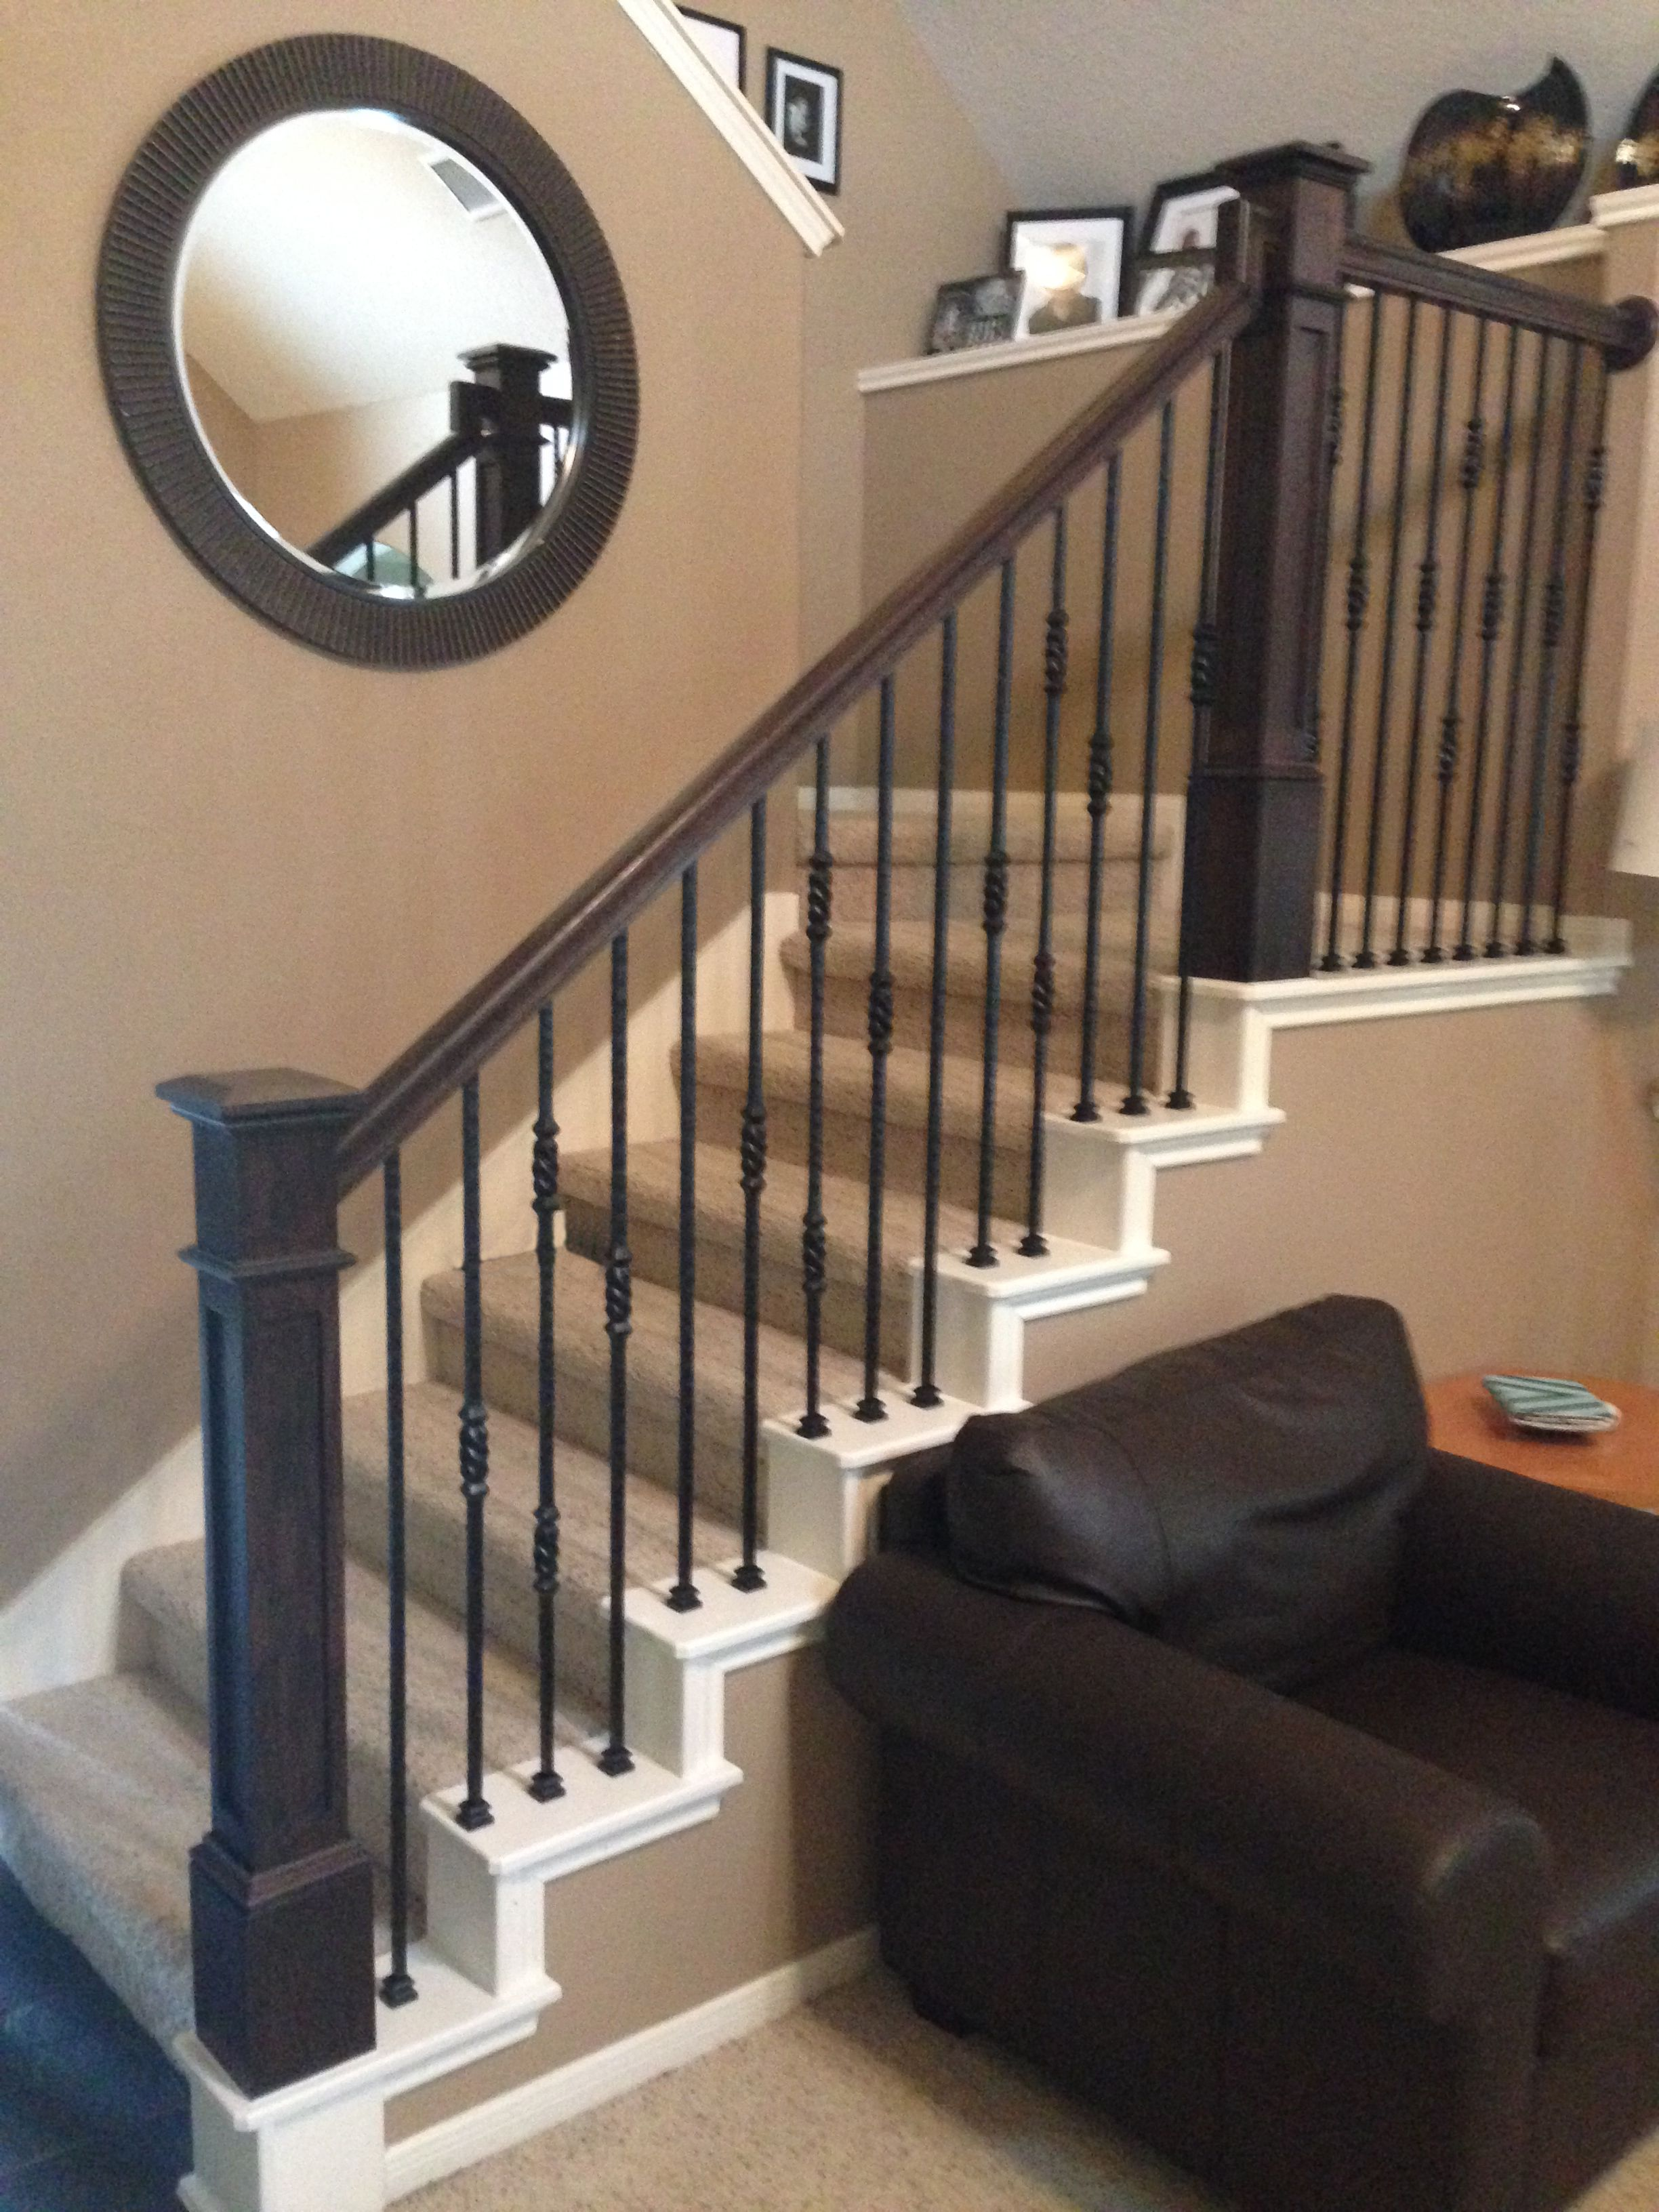 At The Ballesteros Residence We Removed The Old Newel Posts And Installed  New Box Newels. We Replaced The Handrail, And Installed Our Powder Coated  And ...